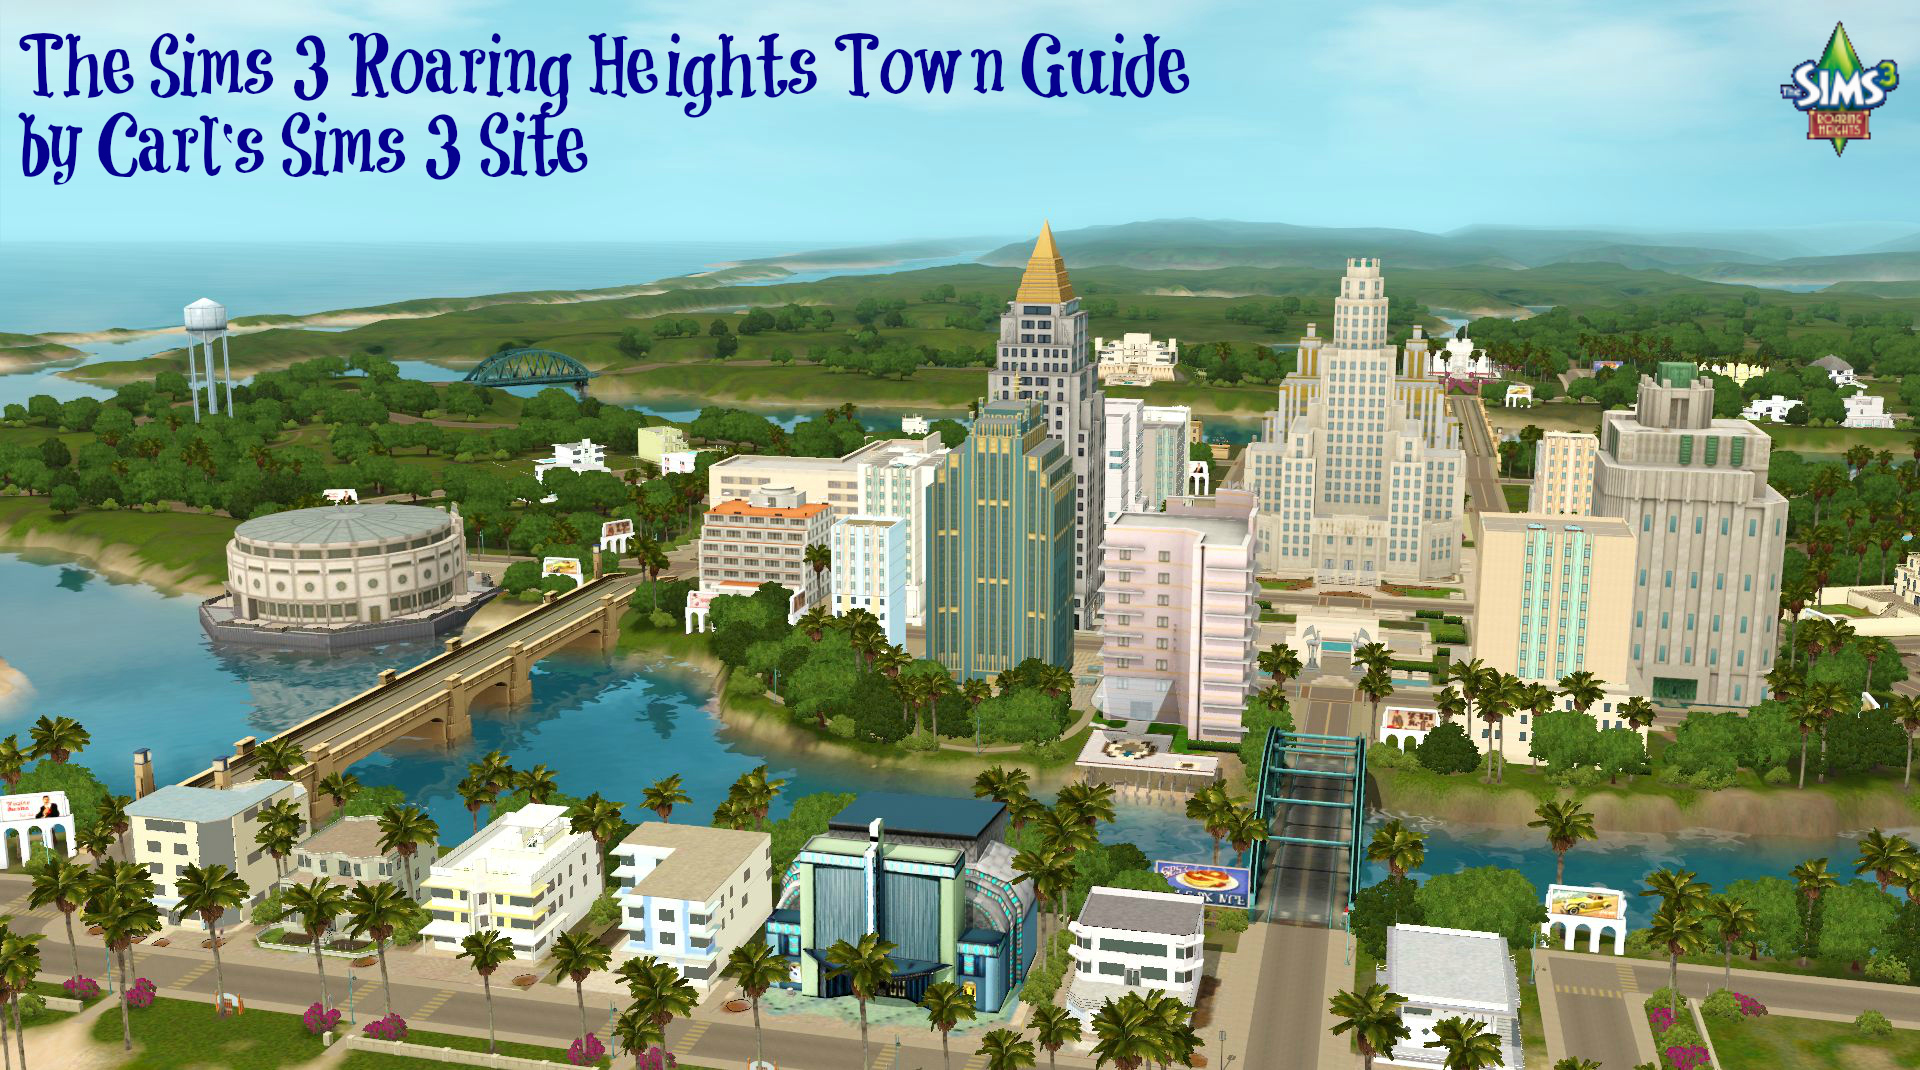 Sims 3 roaring heights world collectible maps rollercoasters the sims 3 roaring heights world a picture of the town gumiabroncs Choice Image